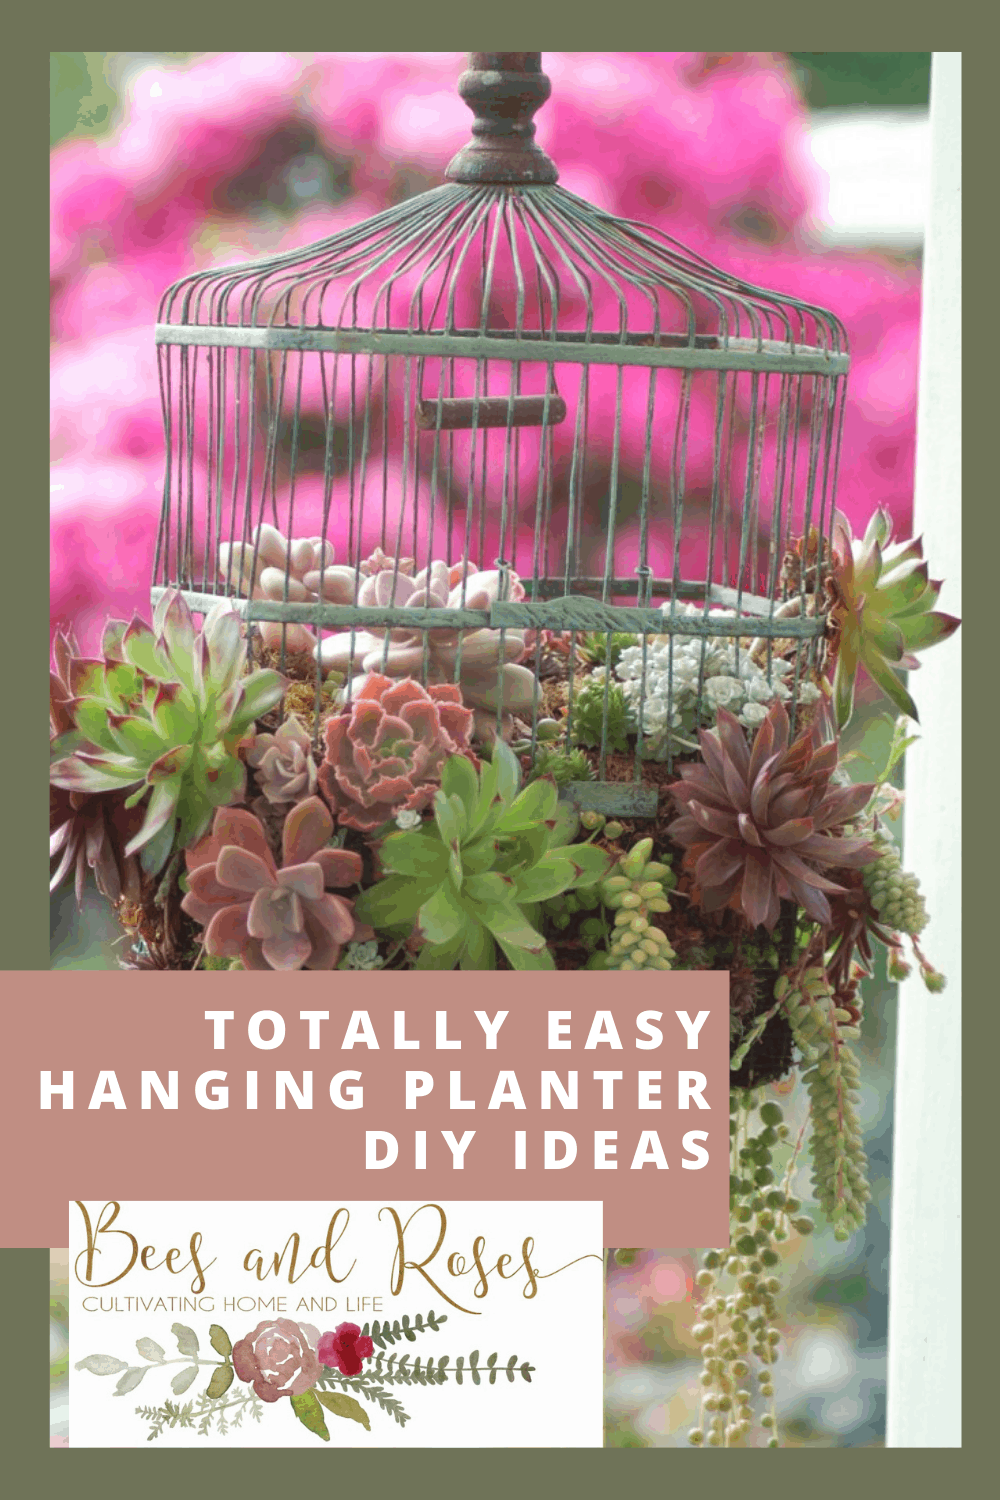 Beesandroses.com makes gardening accessible and easy for anyone! Find tips and tricks to help you master your green thumb! Get creative with these DIY hanging planters that look and function great!